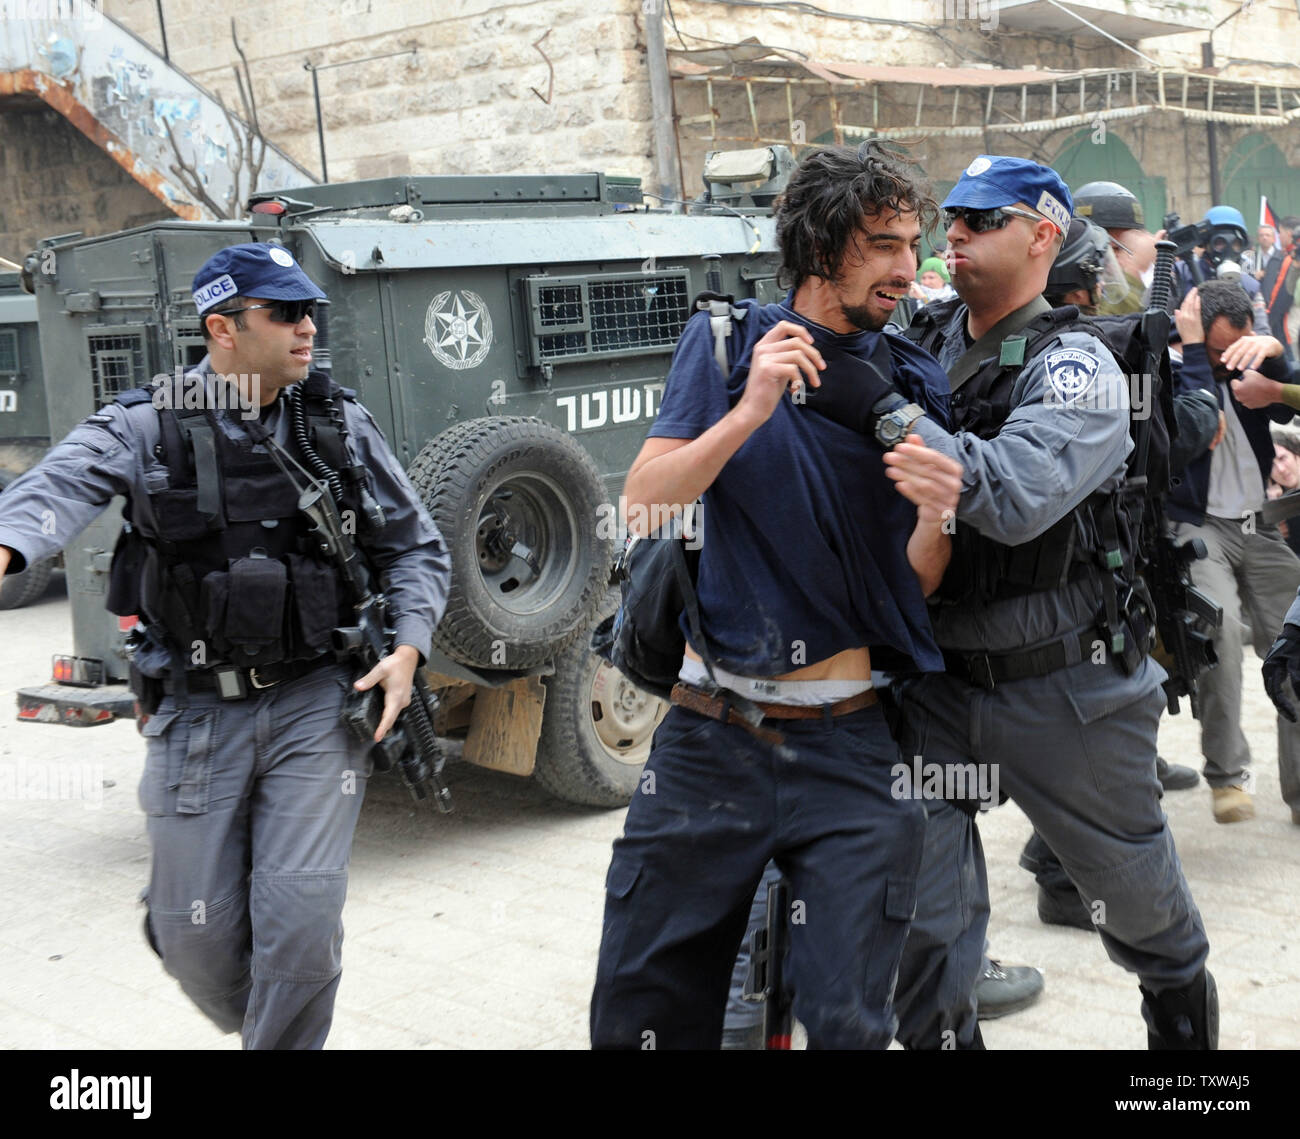 Israeli riot police arrest a left-wing activist during a protest against the closure of Shuhada Street to Palestinians in Hebron, West Bank, February 25, 2011. Demonstrators shouted slogans against the U.S. for vetoing the UN Security Council resolution condemning Israeli settlements.  UPI/Debbie Hill. - Stock Image